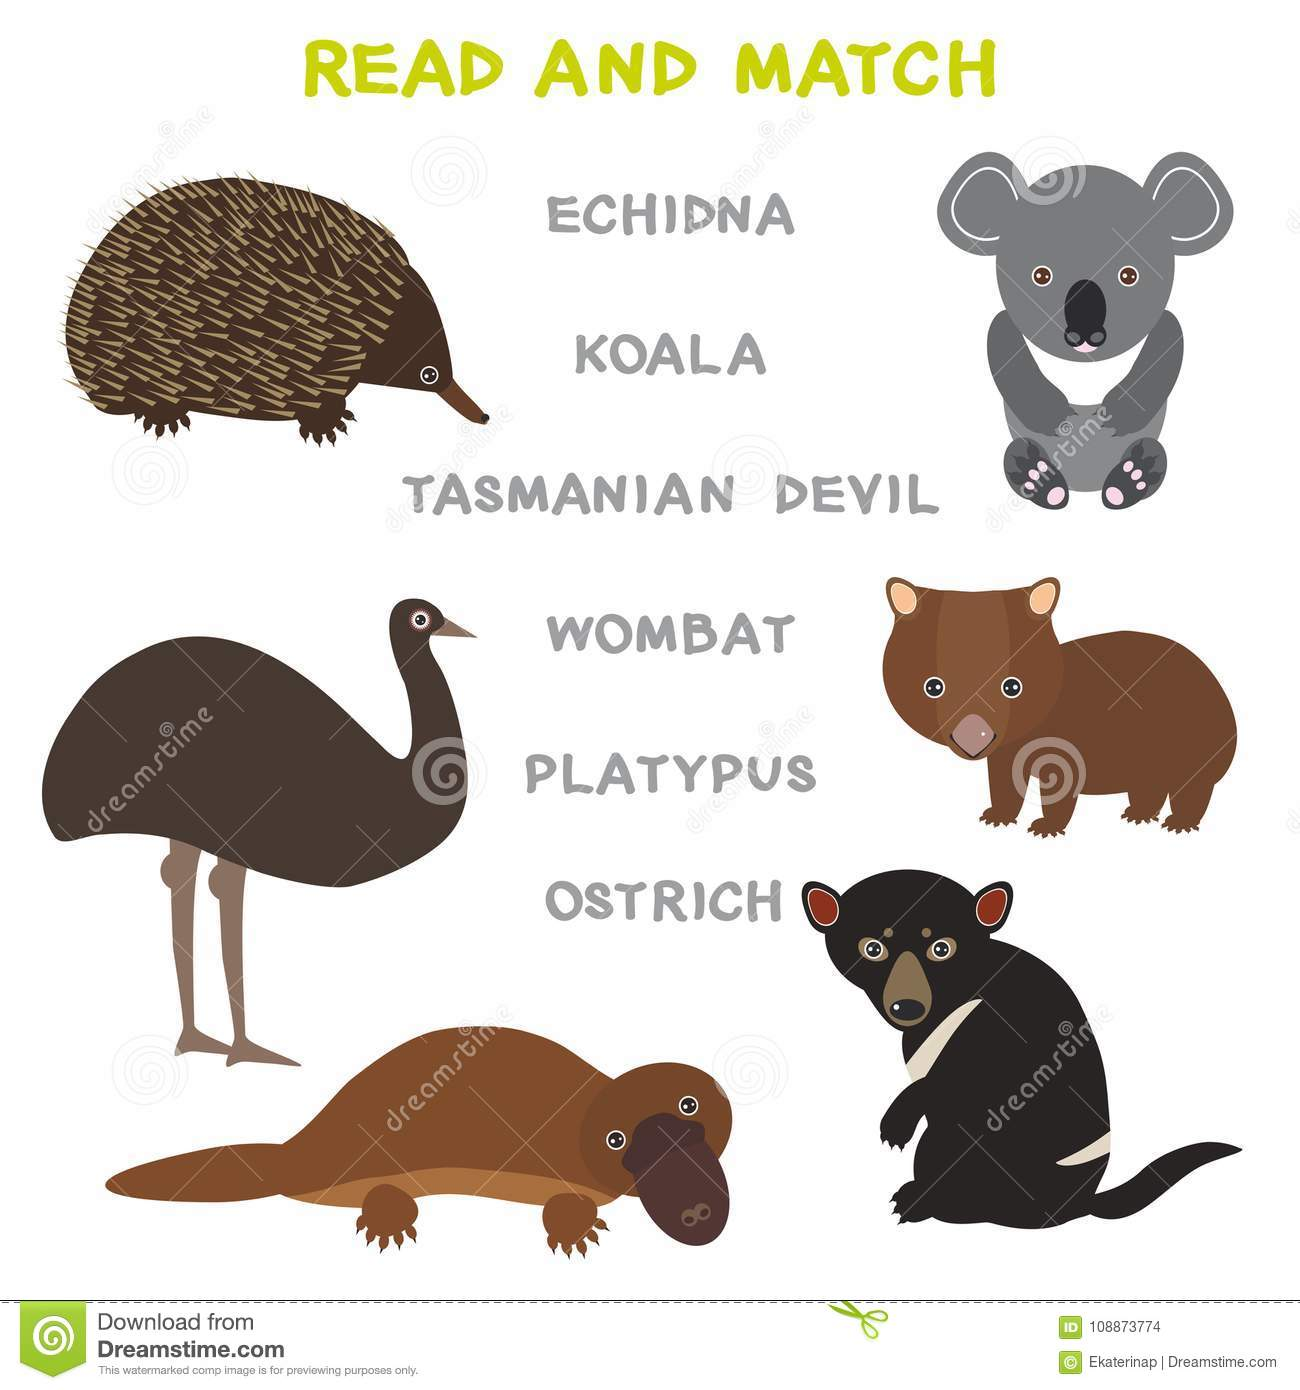 Kids Words Learning Game Worksheet Read And Match Funny Animals Ostrich Echidna Platypus Koala